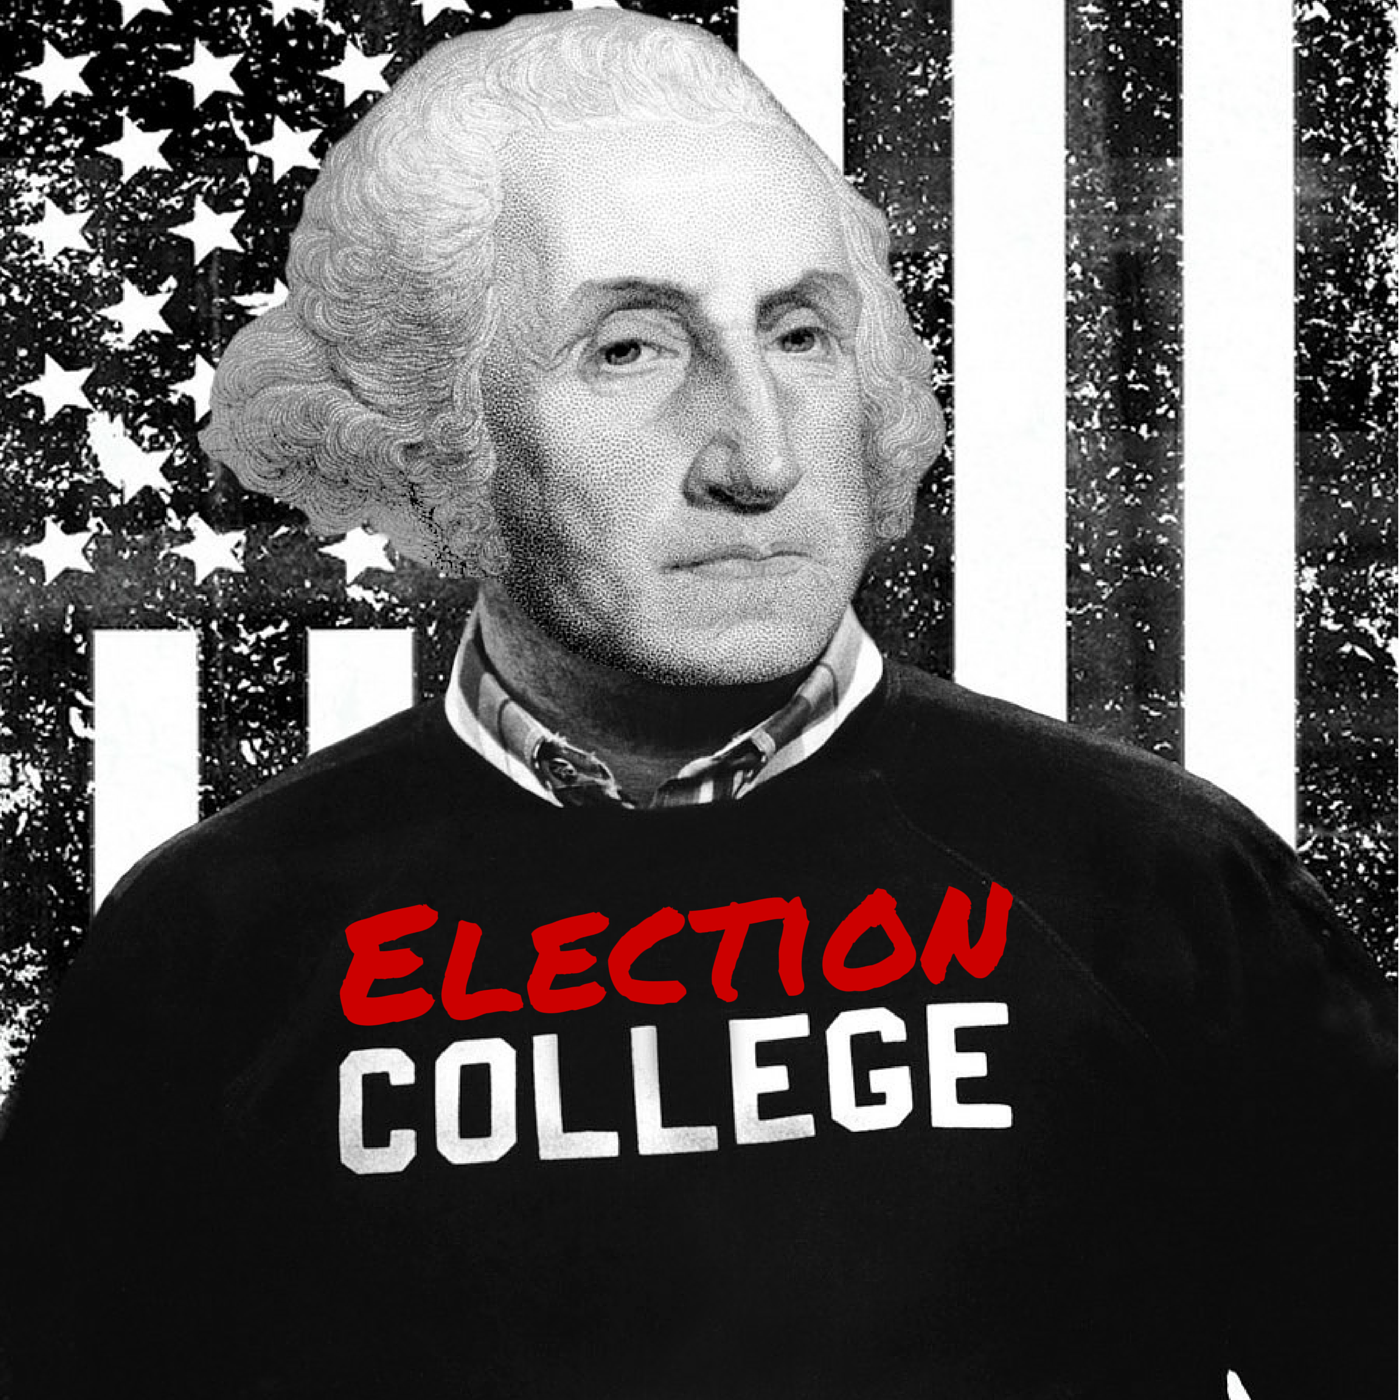 Presidential Inaugurations | Episode #157 | Election College: United States Presidential Election History